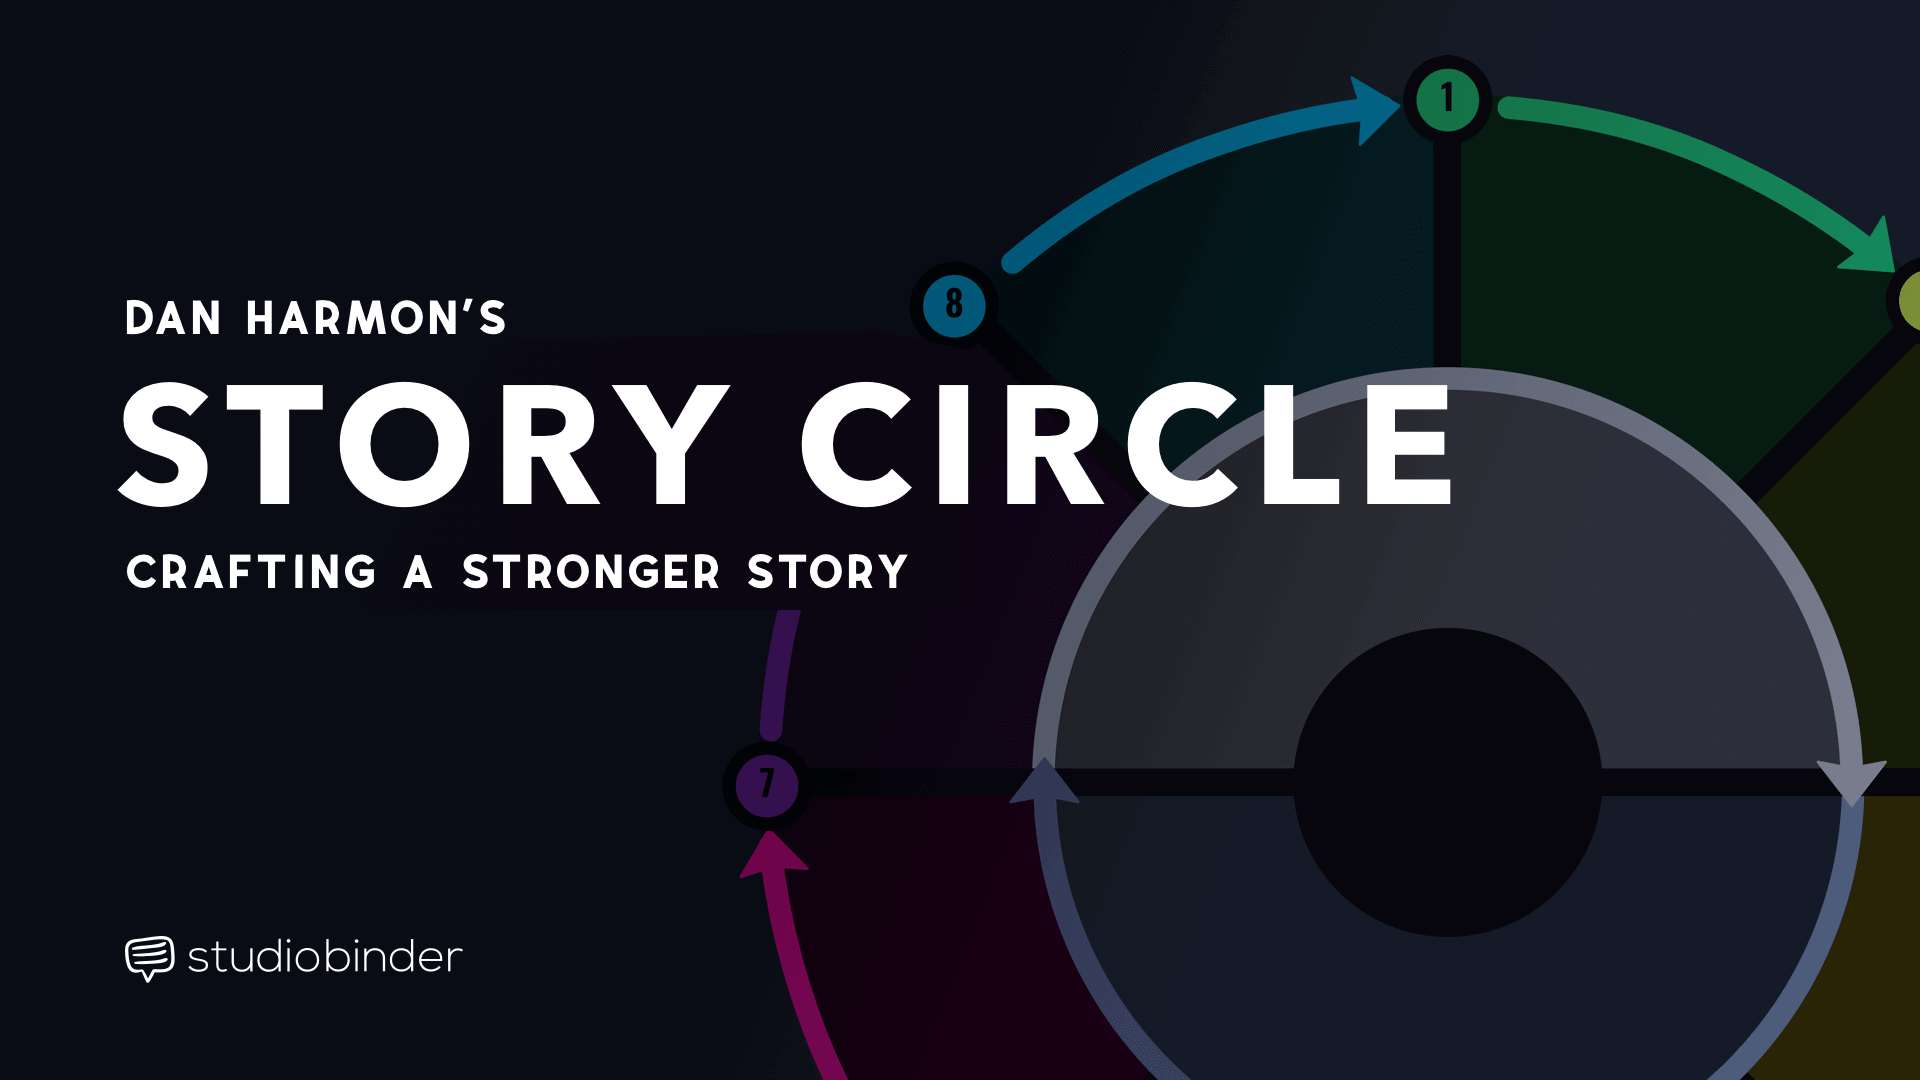 Dan Harmon Story Circle Can Help You Shape a Better Story - Featured - StudioBinder